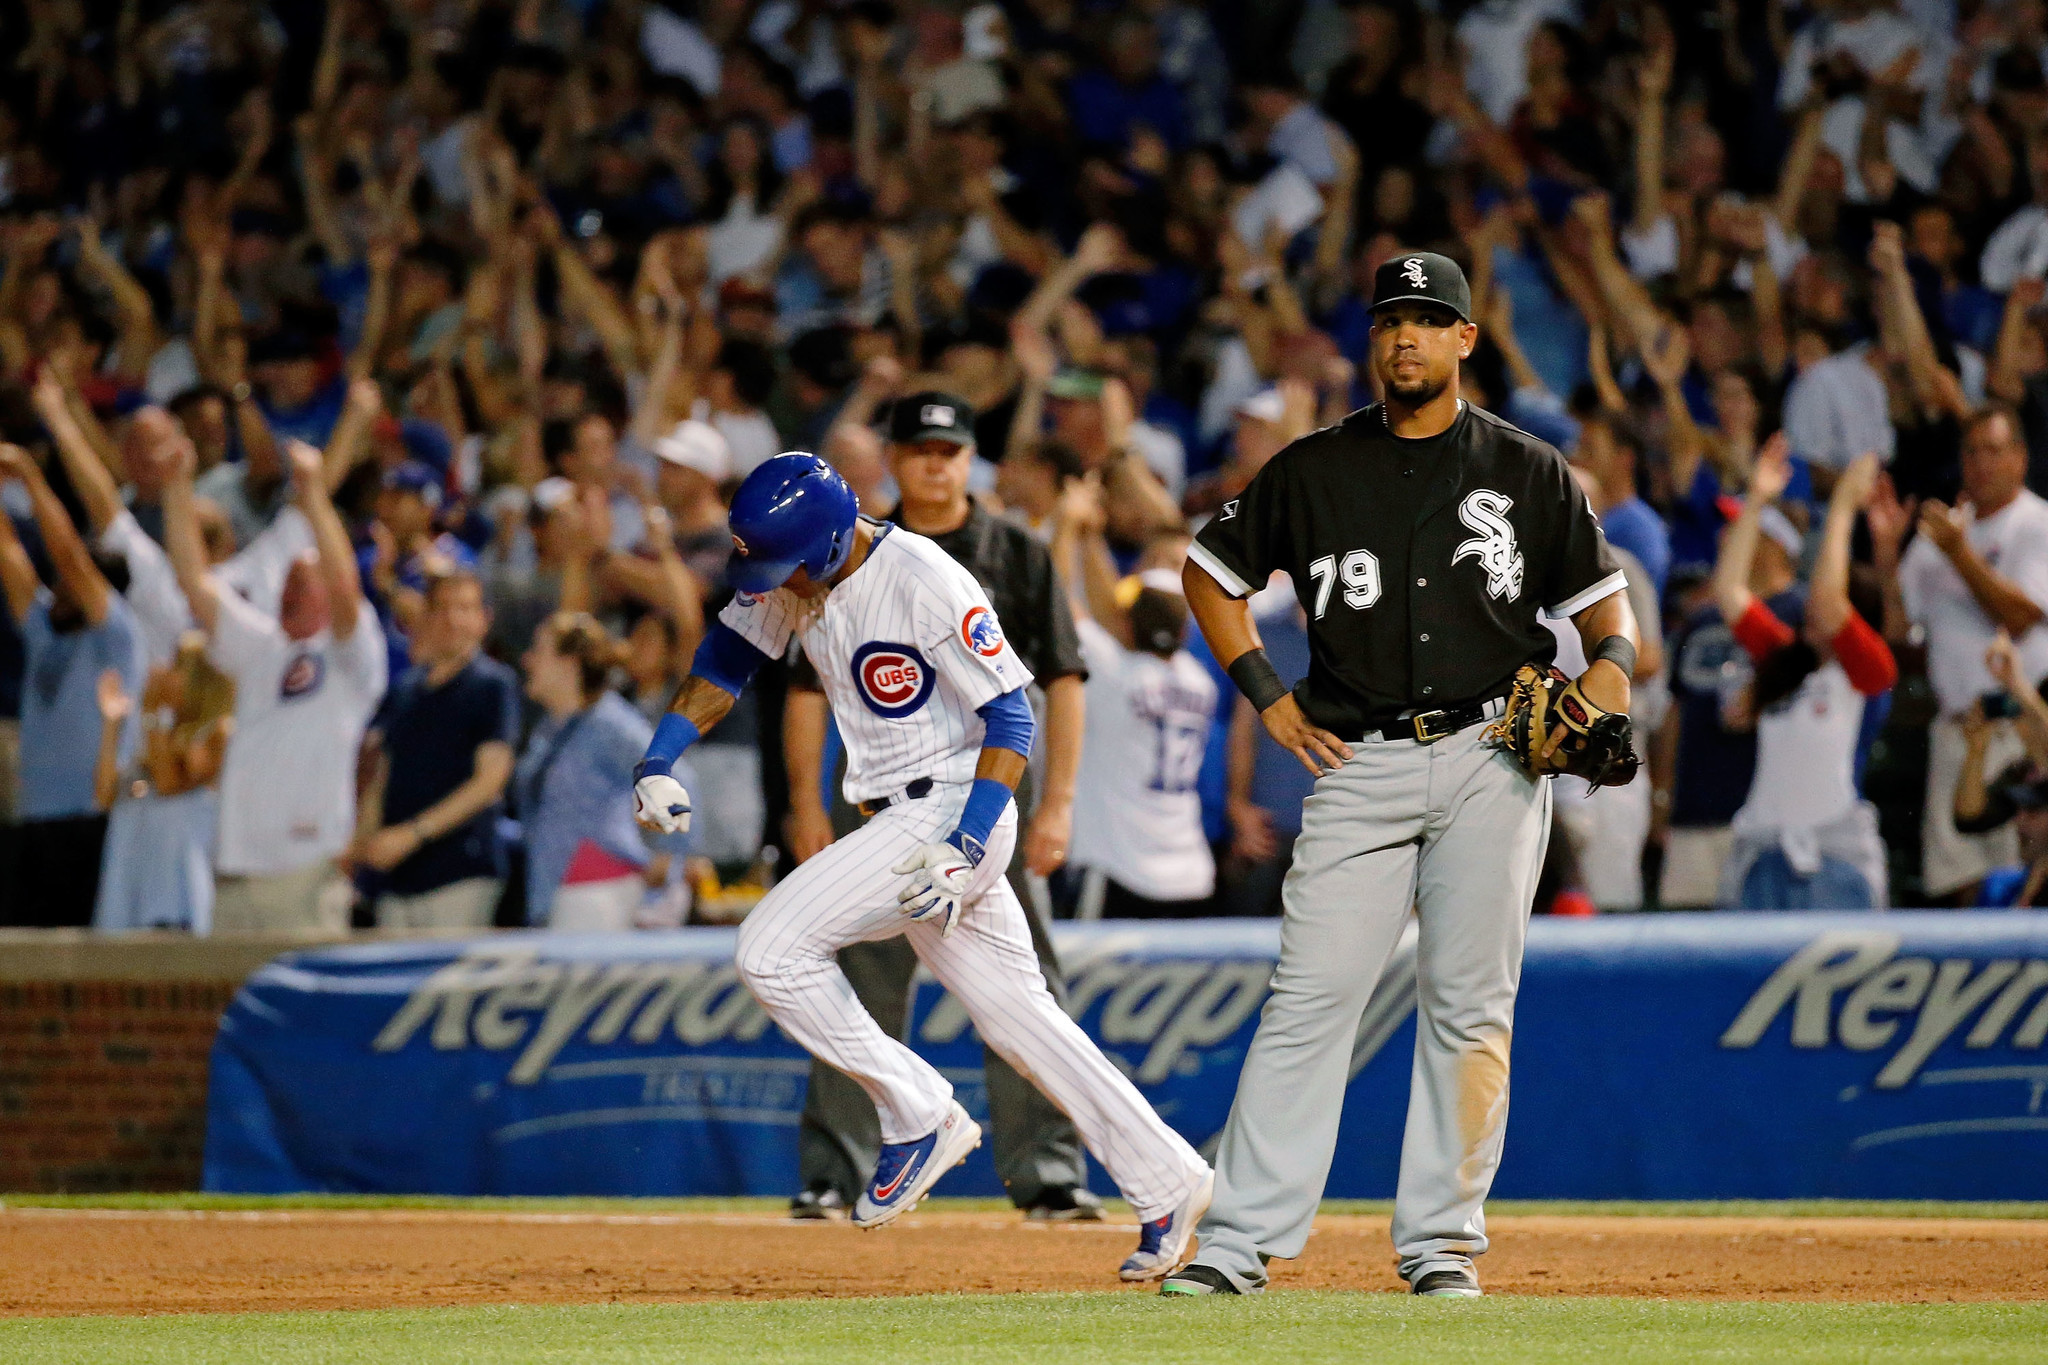 Ct-csn-live-stream-cubs-white-sox-games-20170119